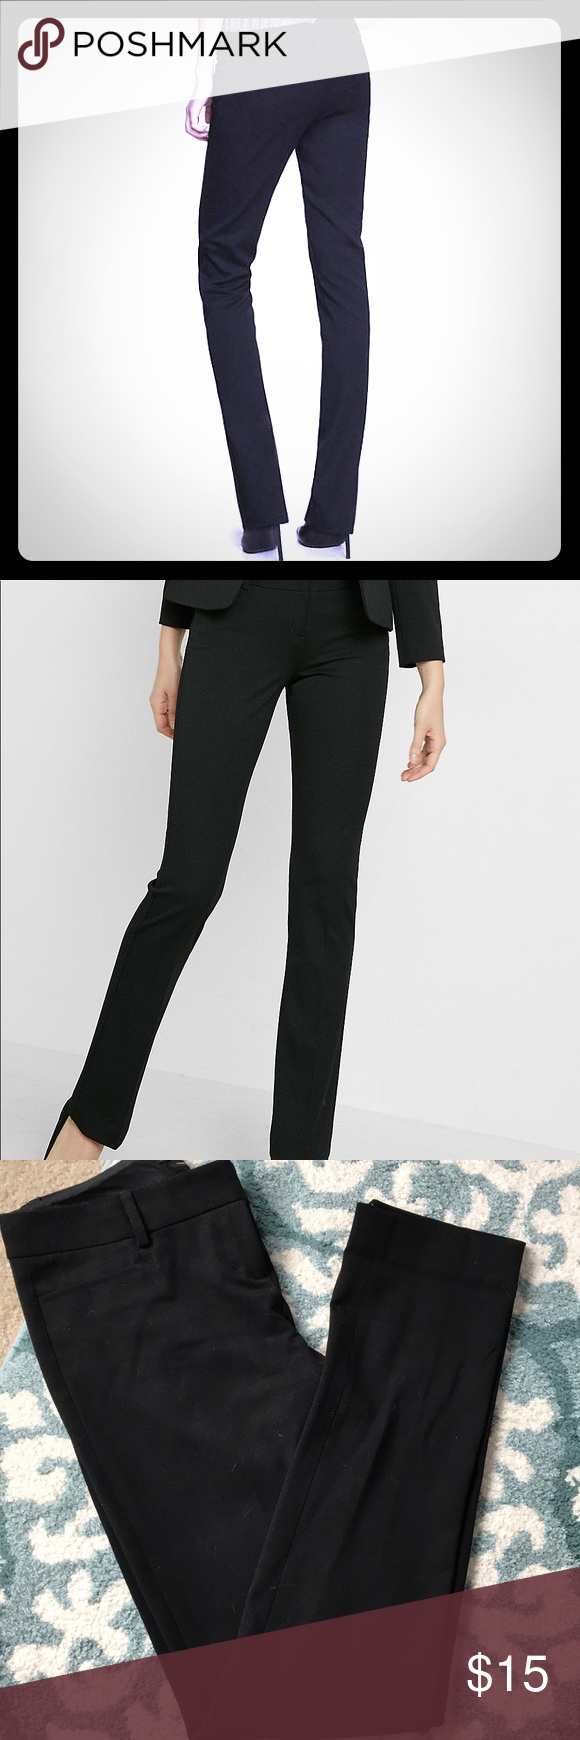 Express columnist skinny work dress pants Gorgeous slim skinny cigarette black columnist express pants size 2R give a professional yet flattering streamlined silhouette.   go from work to play w these very gently loved pants. Button zipper and clasp closures.   Bundle to save! Thanks for looking. 💙💙💙 Express Pants Skinny